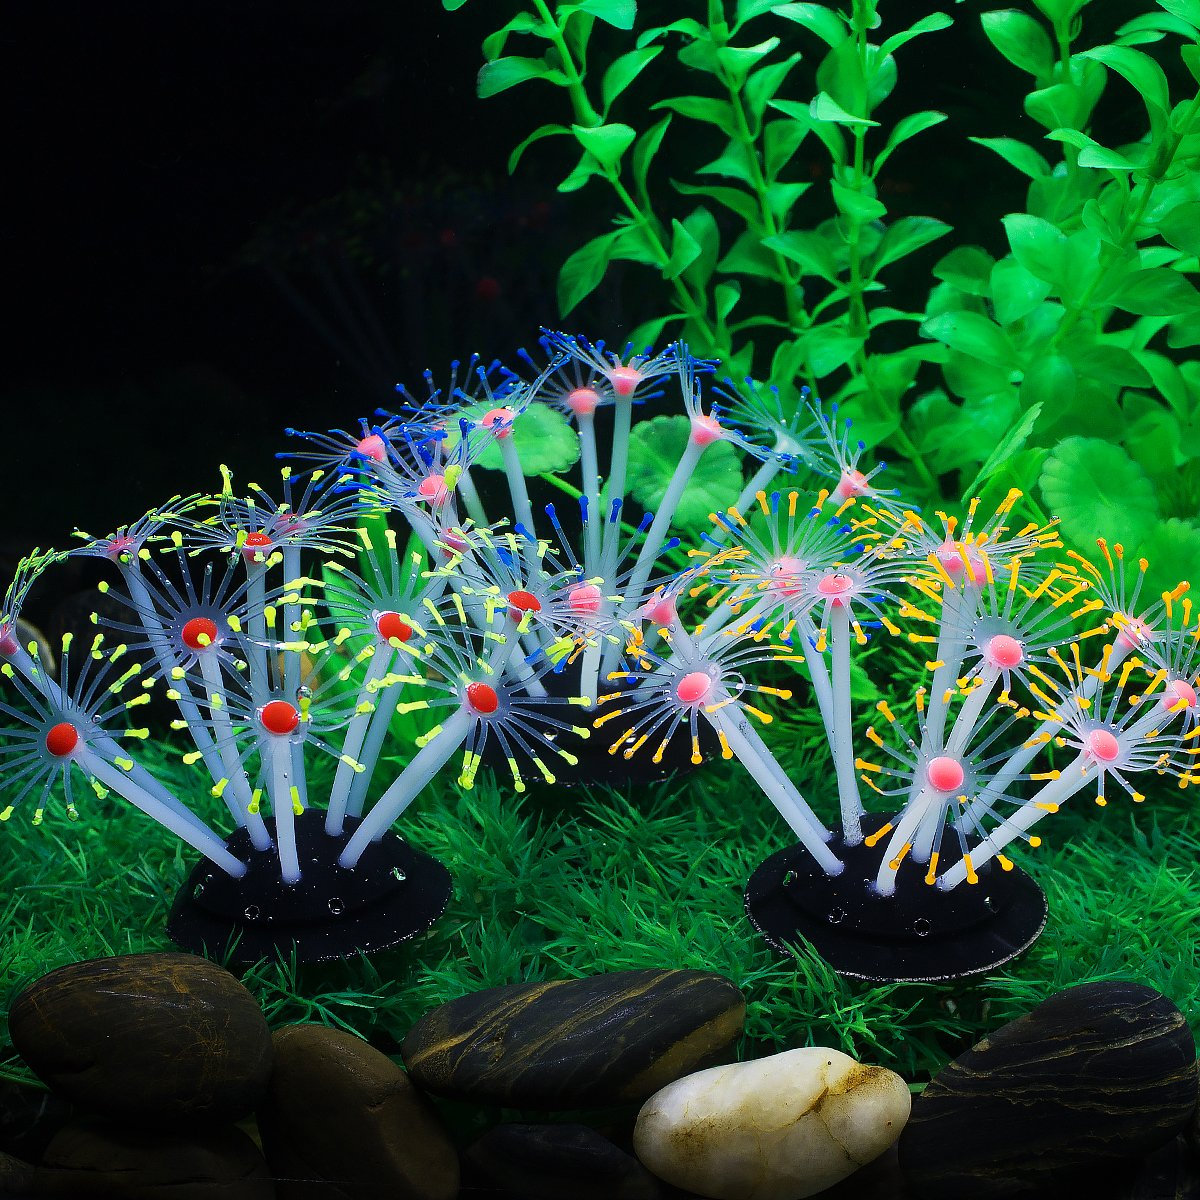 2 Saim Aquarium Coral Ornaments Artificial Coral Plant Decorations for Fish Tank Decor, 3Pcs